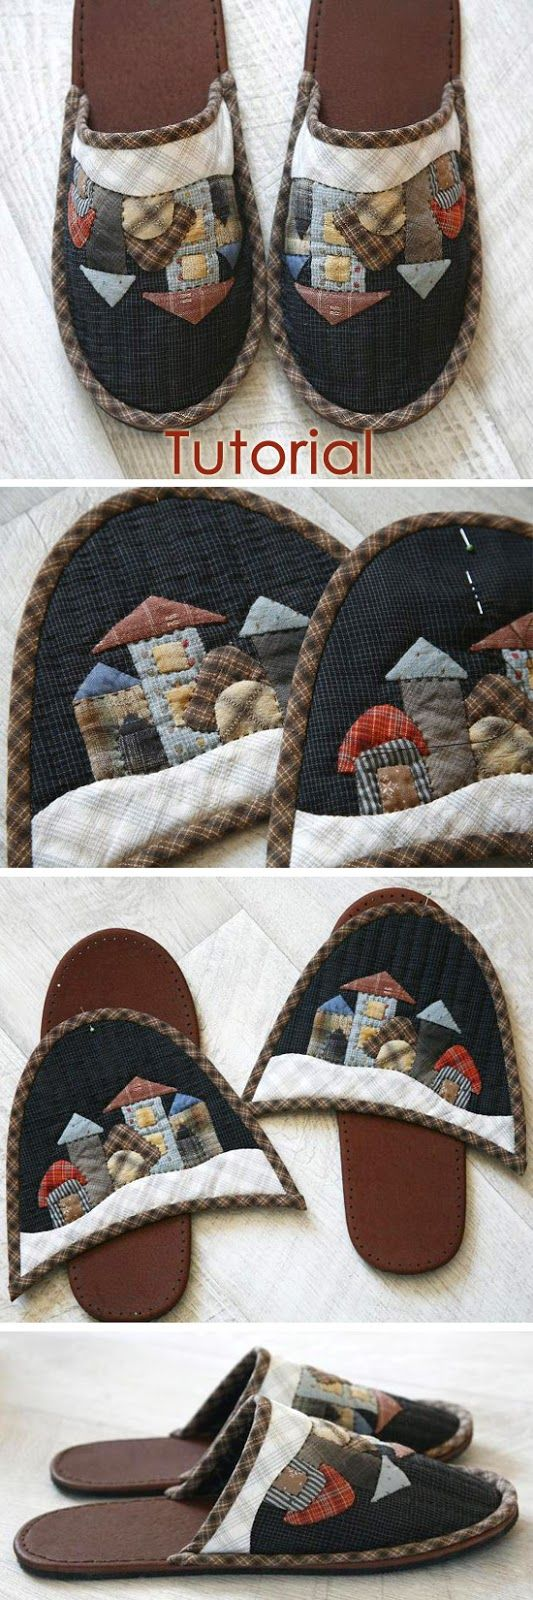 Bonitas zapatillas. Tutorial en fotos